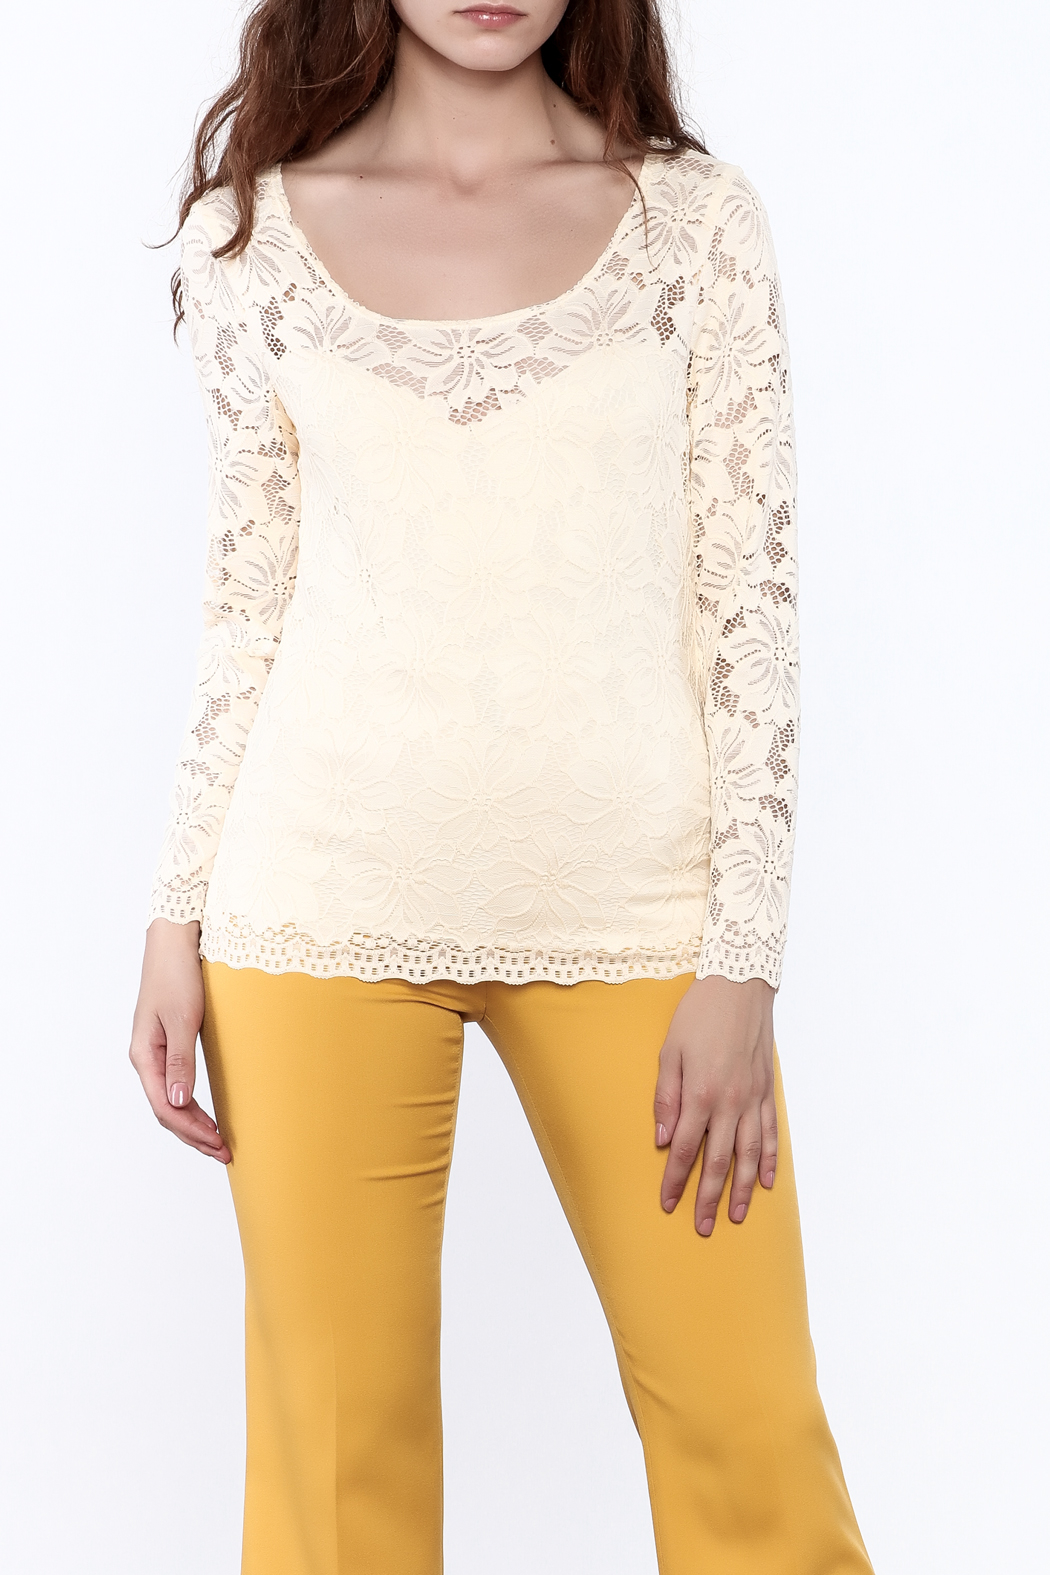 Sharon Max Ivory Lace Top - Main Image